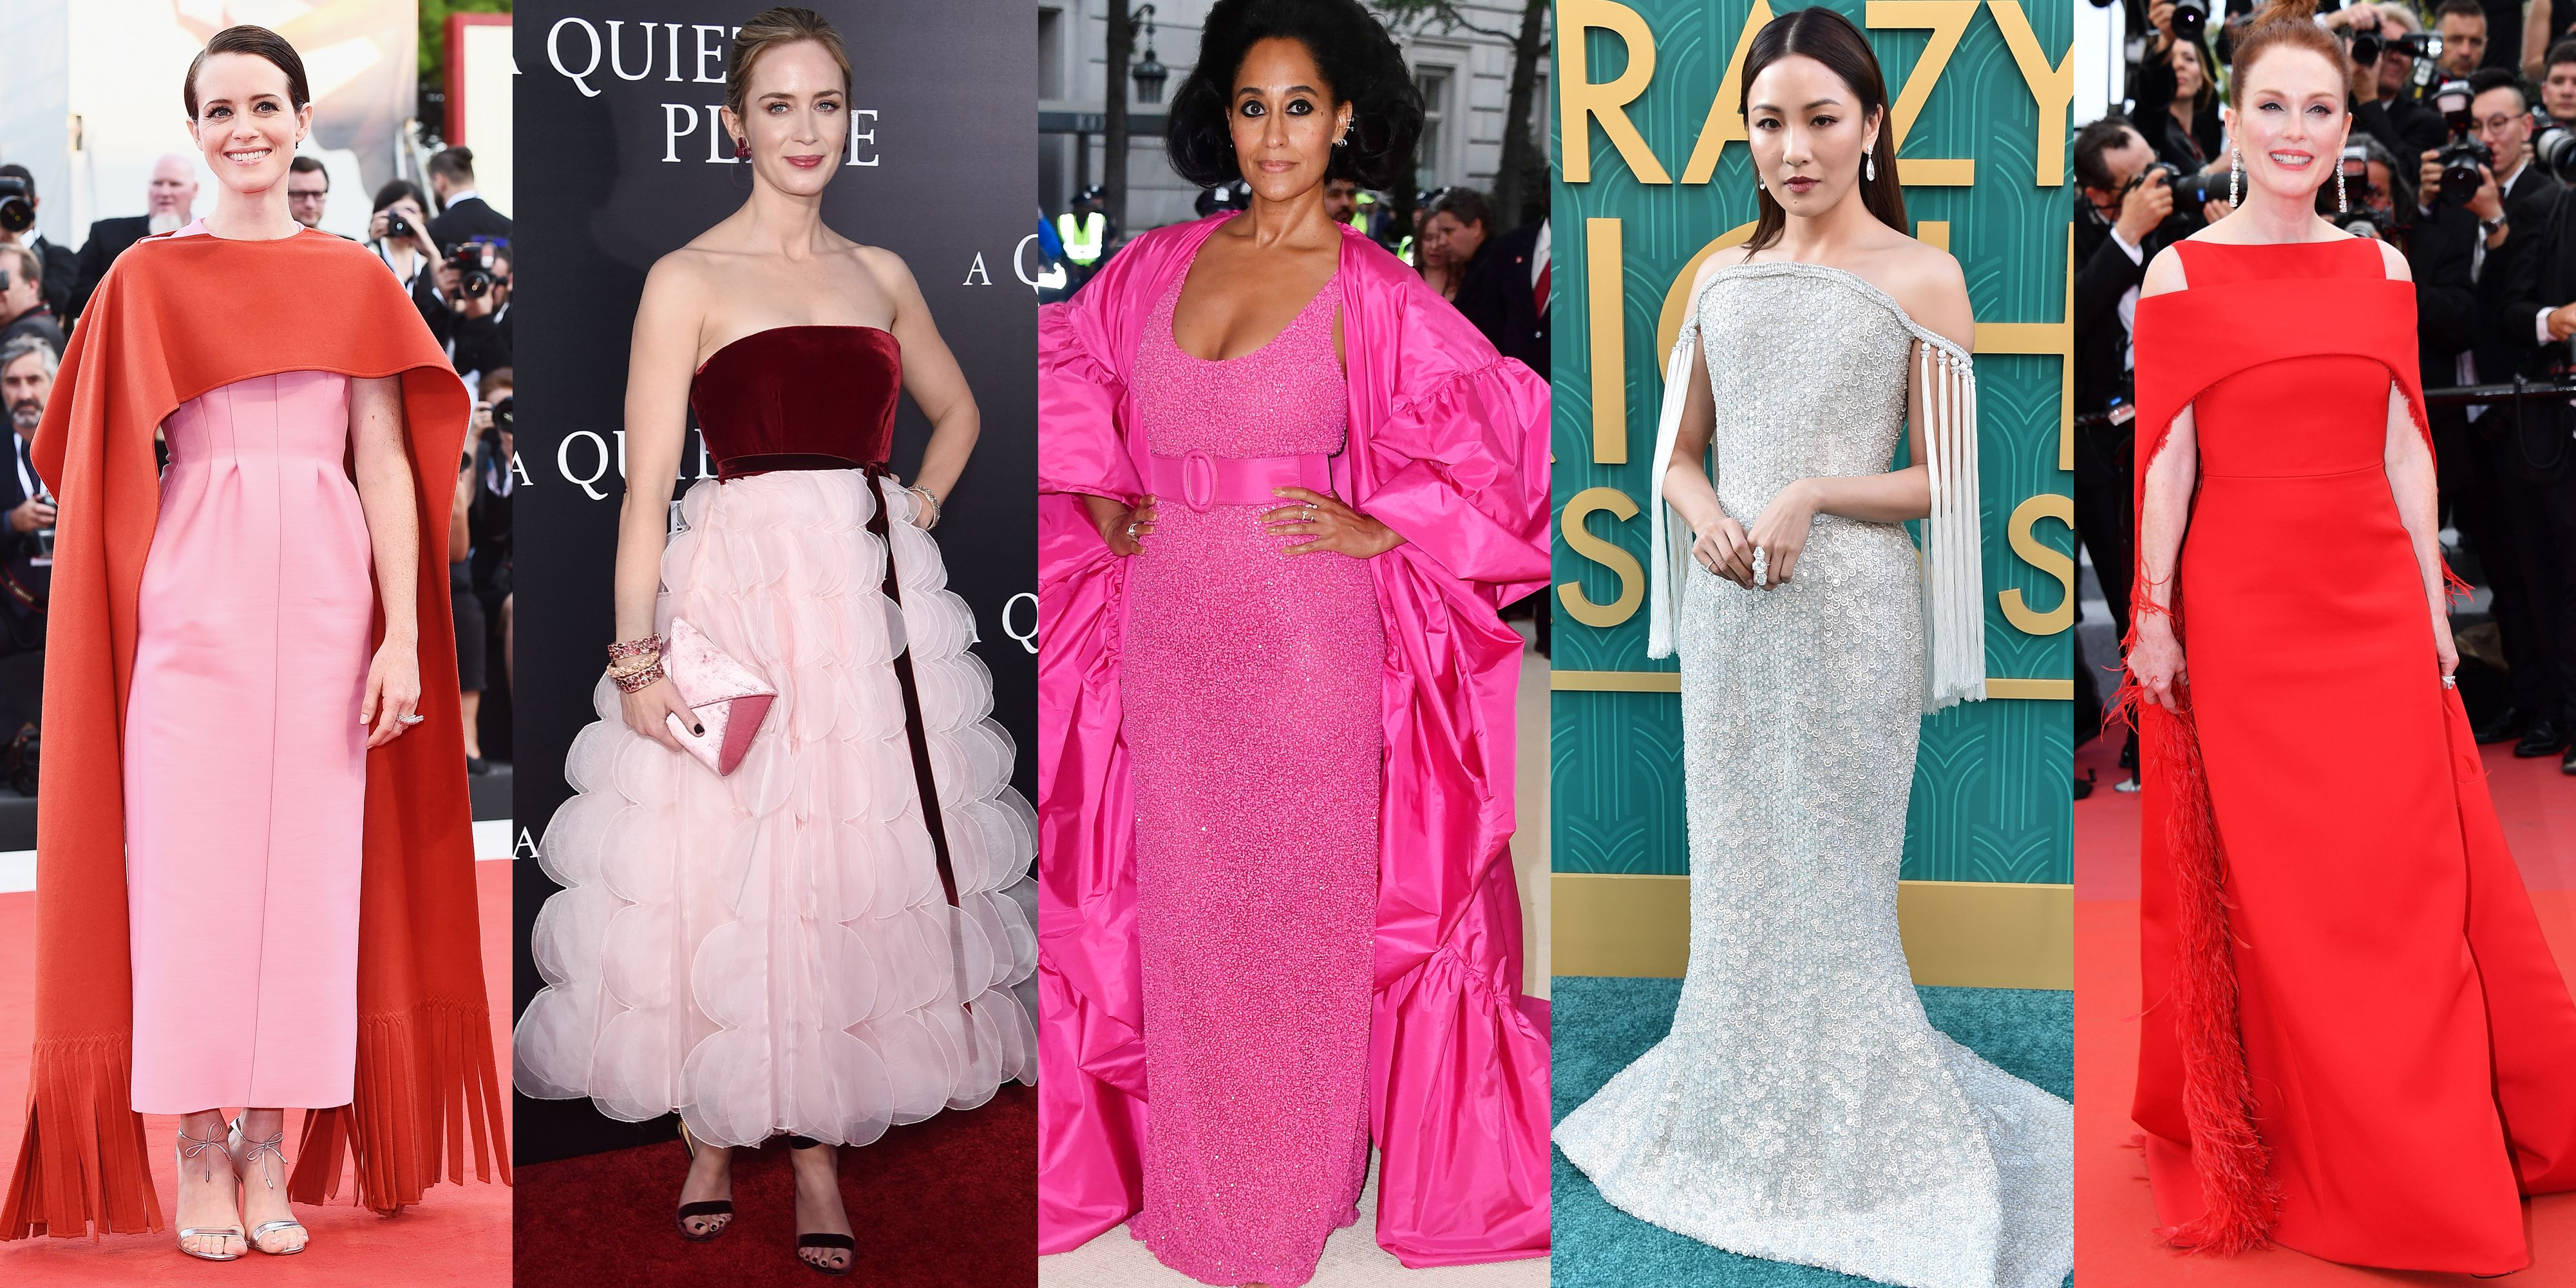 Ever year, the A-list (from your favorite celebrities such as Claire Foy, Nicole Kidman and Amal Clooney) to your most adored royals (we're looking at you Kate Middleton and Meghan Markle) turn up the glamour for formal events and red carpets galore. And 2018, well, was no exception.